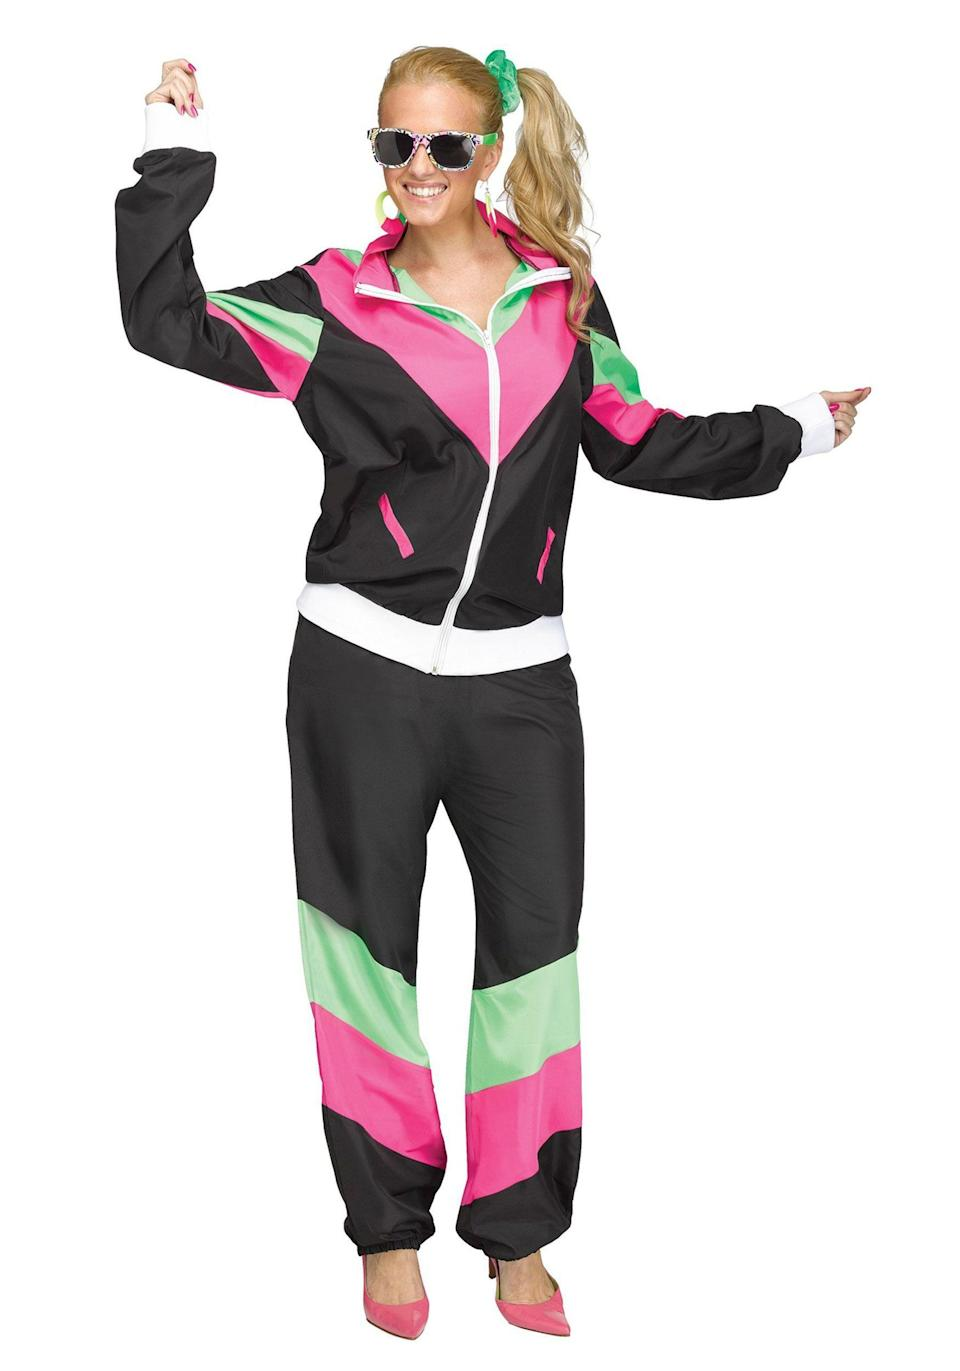 """<p><strong>Read Reviews</strong></p><p>halloweencostumes.com</p><p><strong>$24.99</strong></p><p><a href=""""https://go.redirectingat.com?id=74968X1596630&url=https%3A%2F%2Fwww.halloweencostumes.com%2Fwoman-s-80-s-track-suit-plus-size-costume.html&sref=https%3A%2F%2Fwww.womansday.com%2Fstyle%2Fg22646261%2Fbest-80s-costumes%2F"""" rel=""""nofollow noopener"""" target=""""_blank"""" data-ylk=""""slk:SHOP NOW"""" class=""""link rapid-noclick-resp"""">SHOP NOW</a></p><p>If you came of age in the '80s, you may already have one of these (and a slew of matching scrunchies) hanging in your closet. Just in case you gave it up at the end of the '90s though this is a great alternative to take you back in time.</p>"""